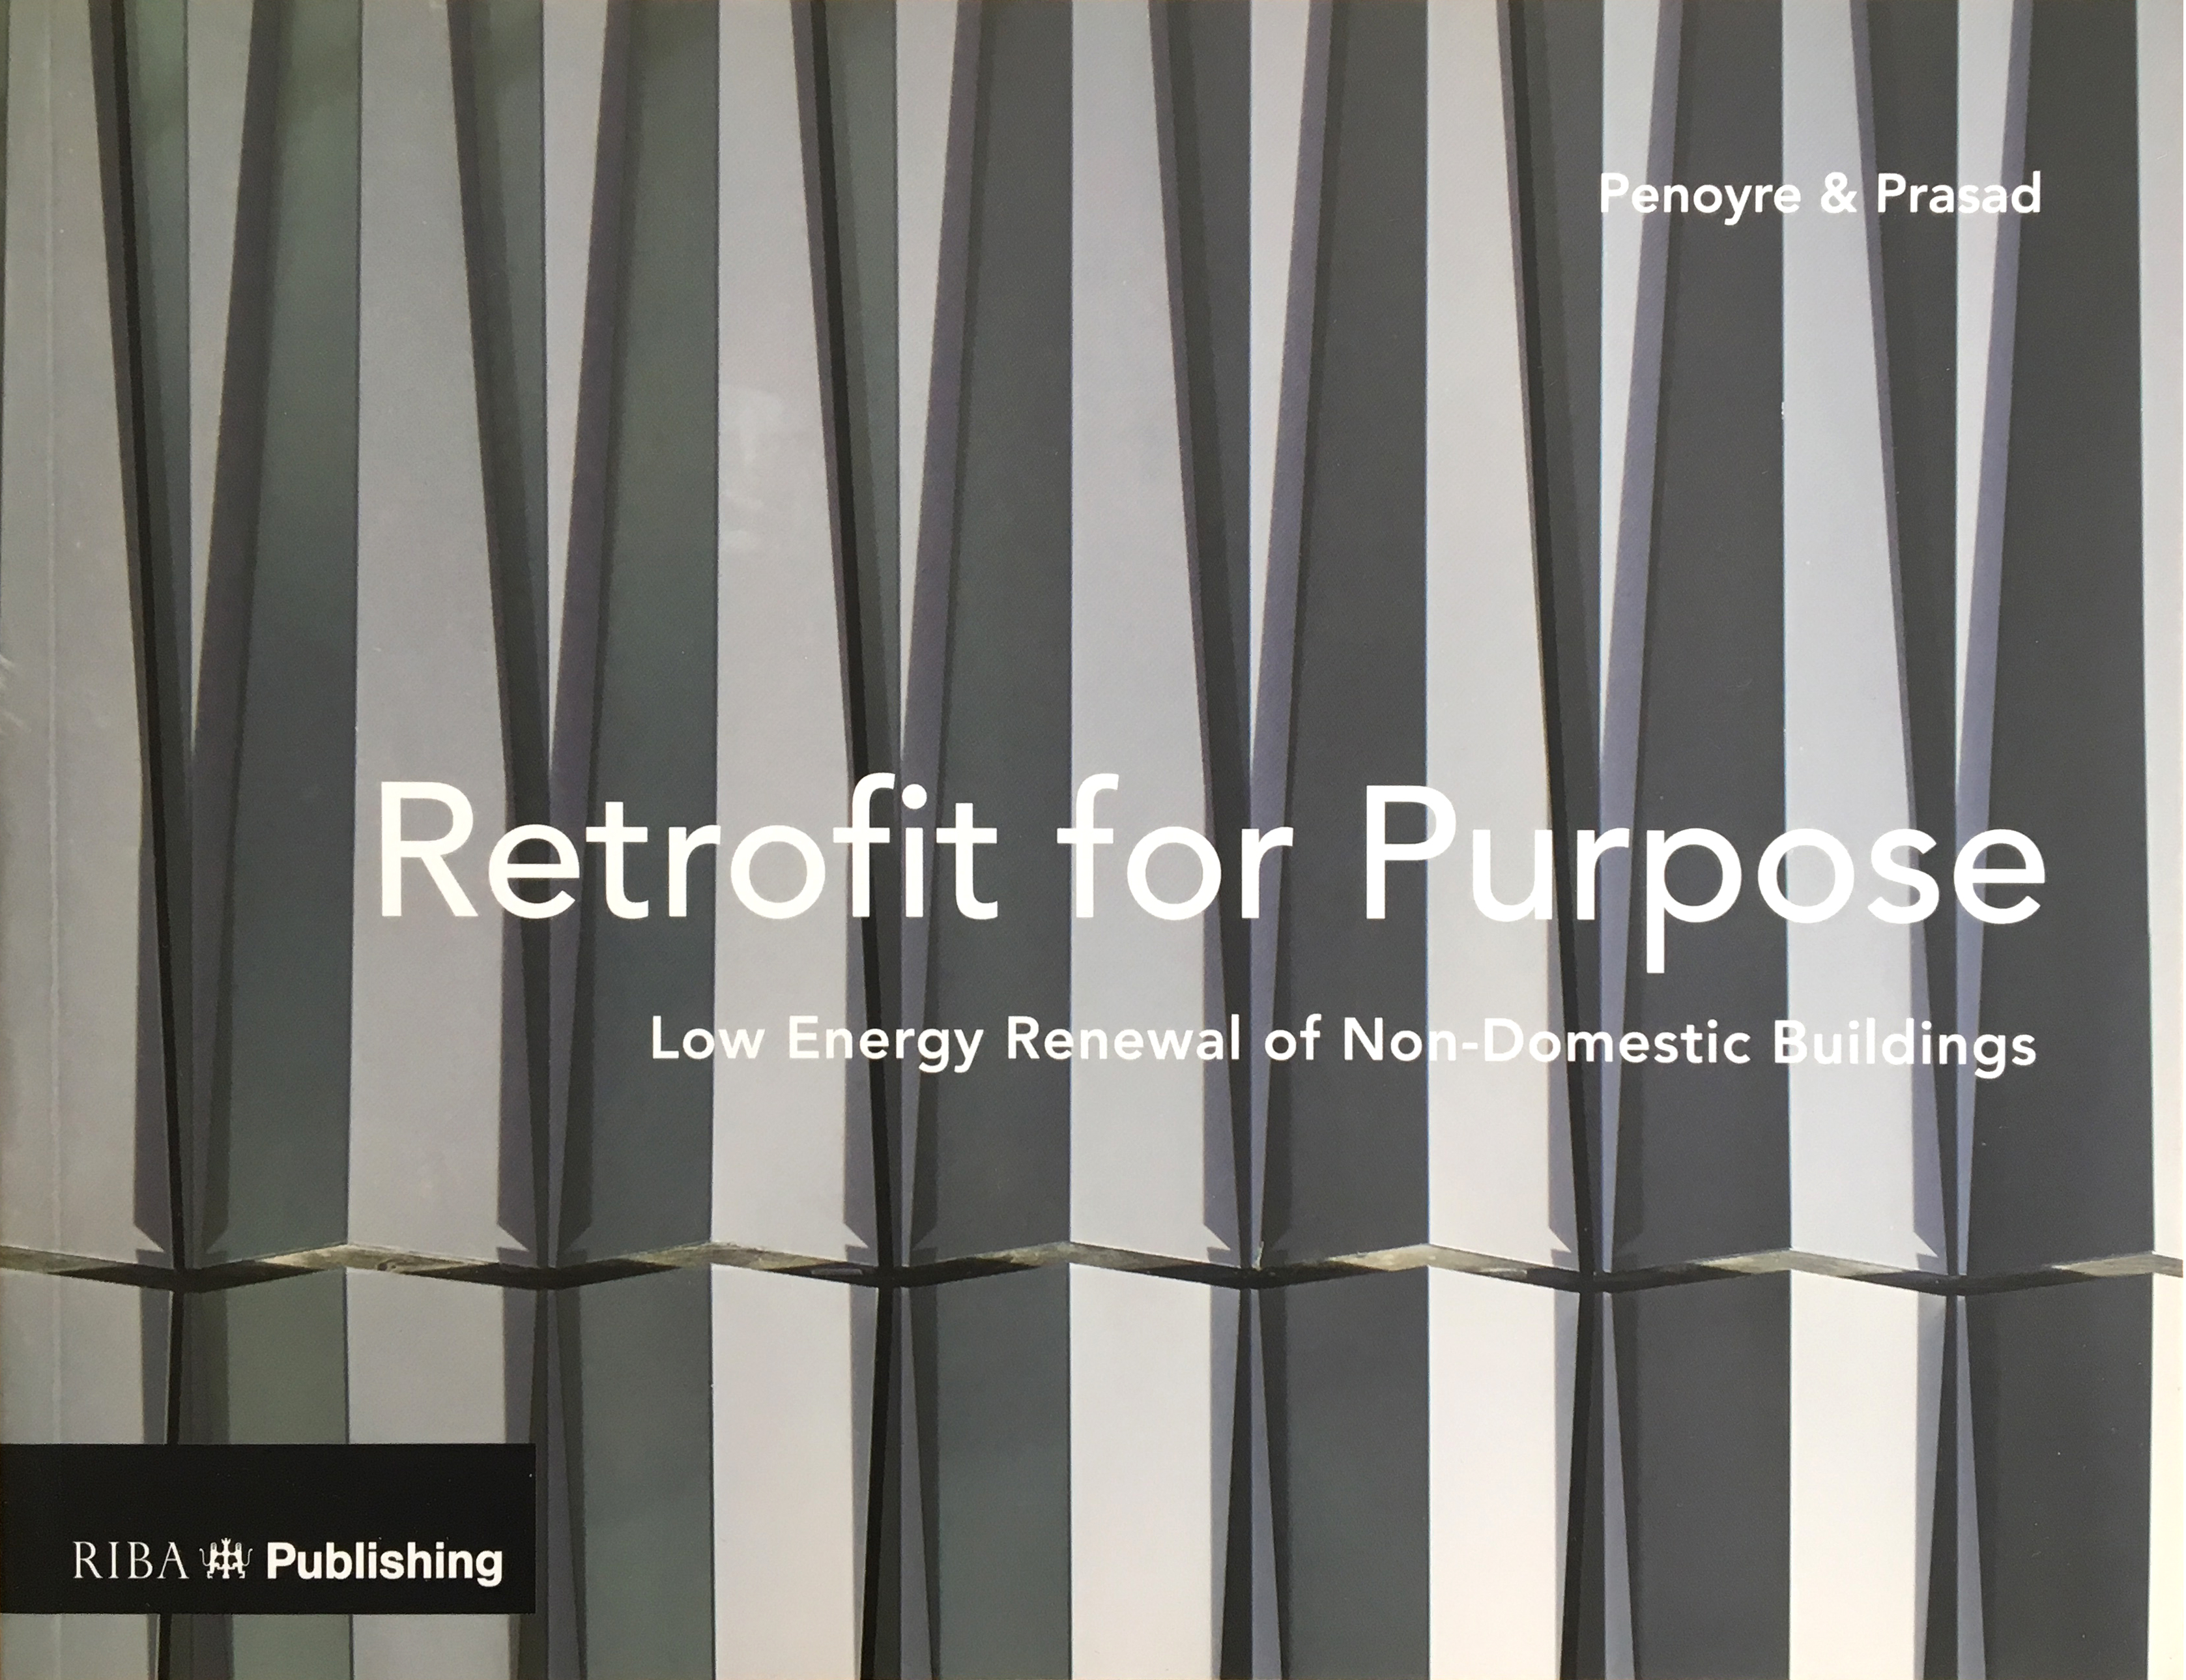 Retrofit for Purpose: How to do more with less?